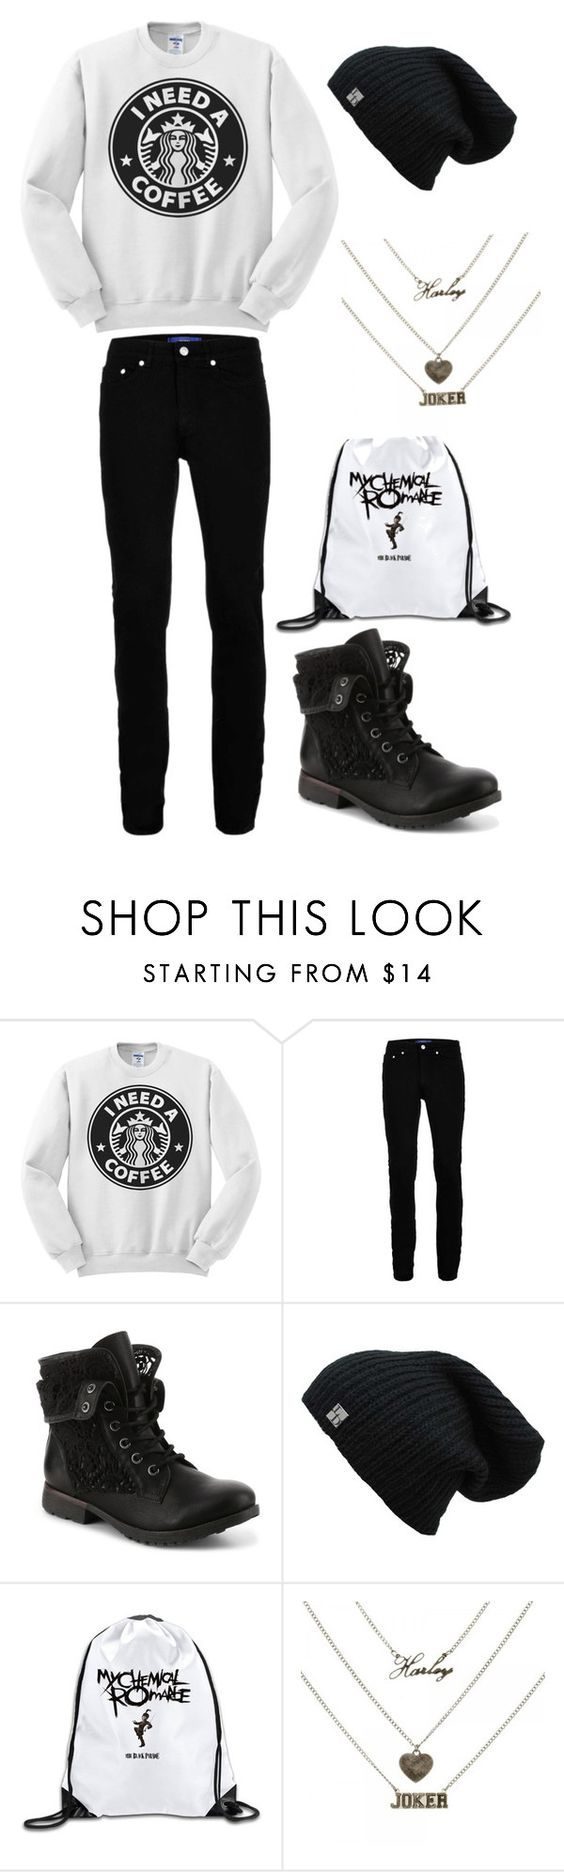 """""""Outfit I'd actually wear #3"""" by tylertbh ❤ liked on Polyvore featuring Topman"""